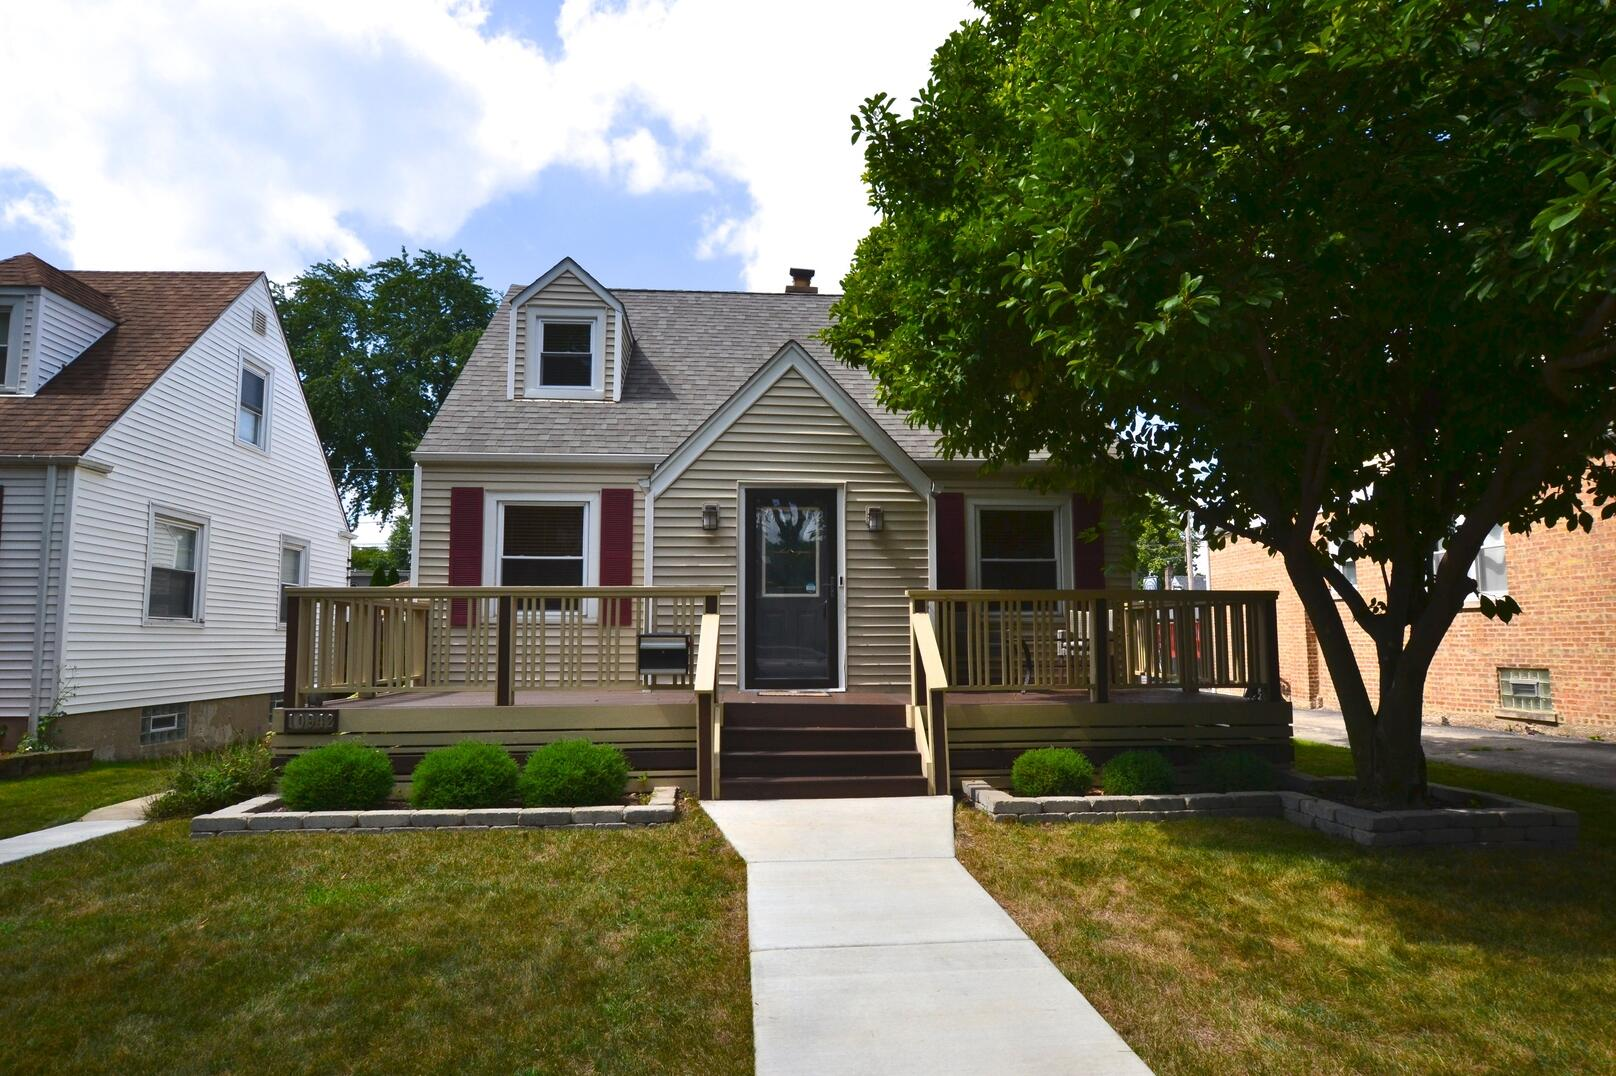 Photo of 10942 Trumbull Chicago IL 60655